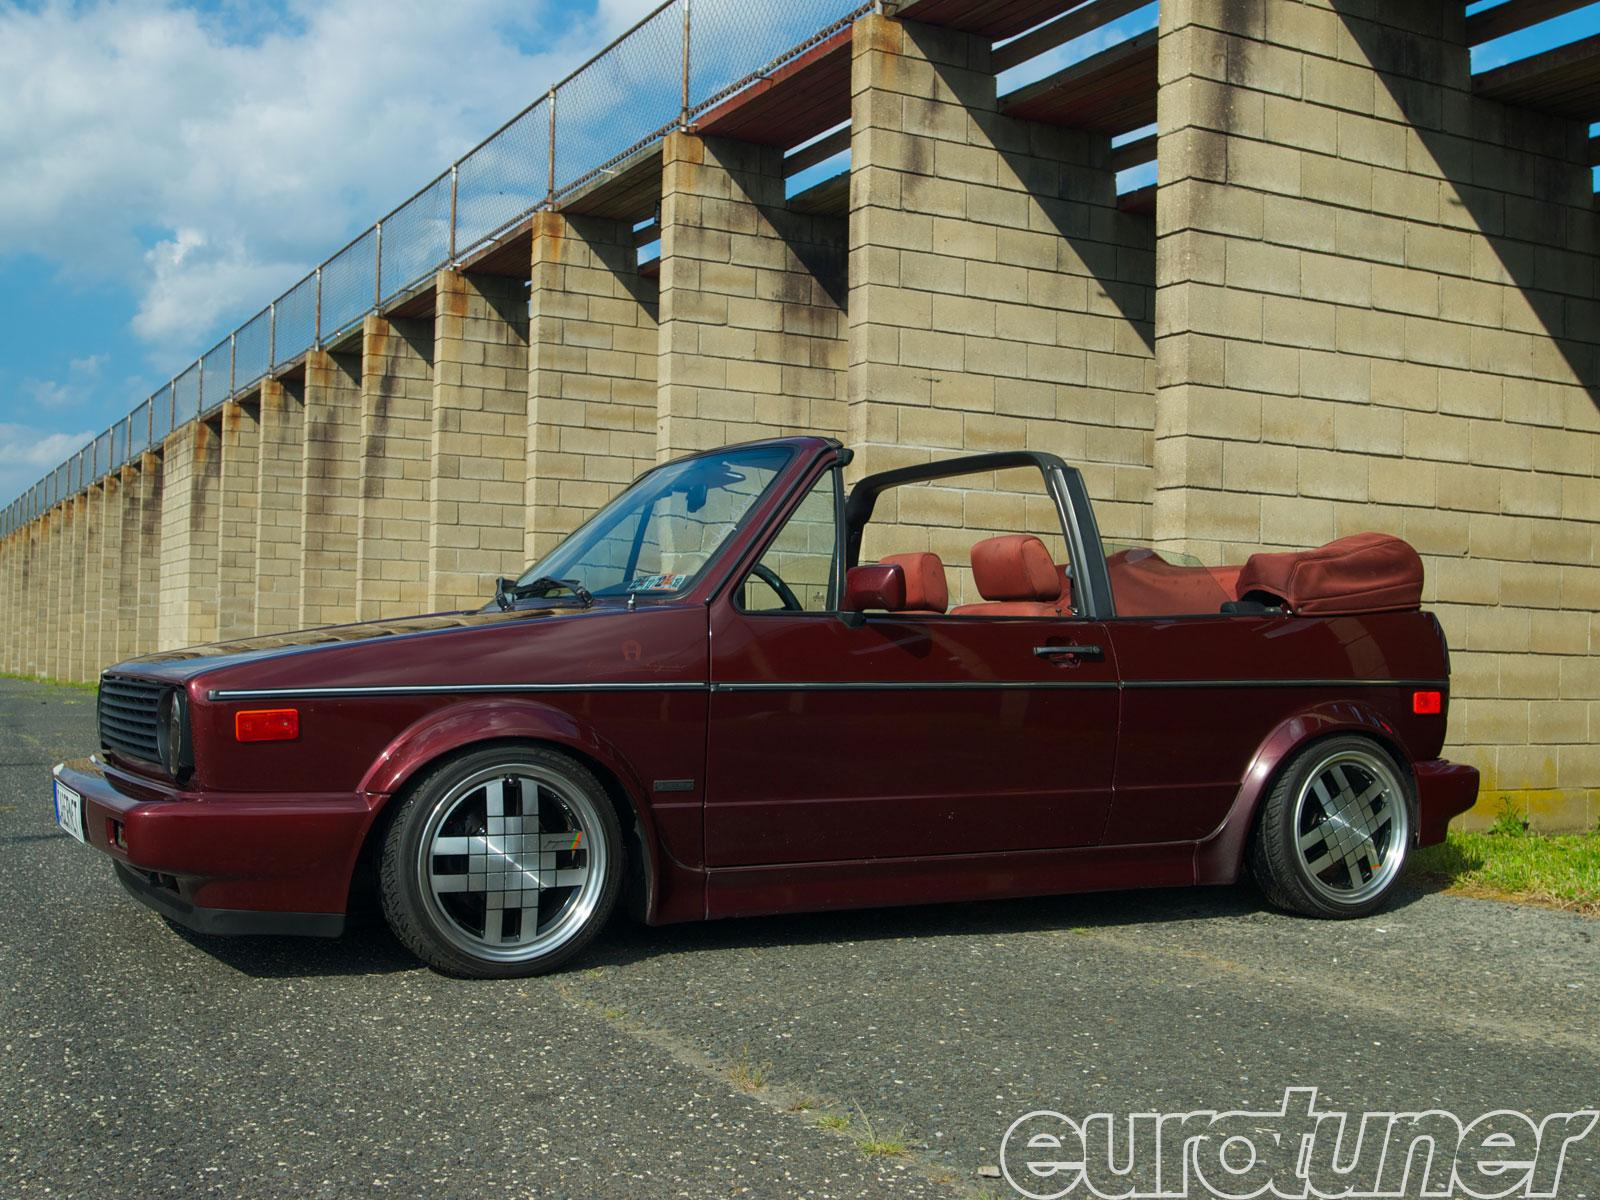 1991 Volkswagen Cabriolet Information And Photos Neo Drive